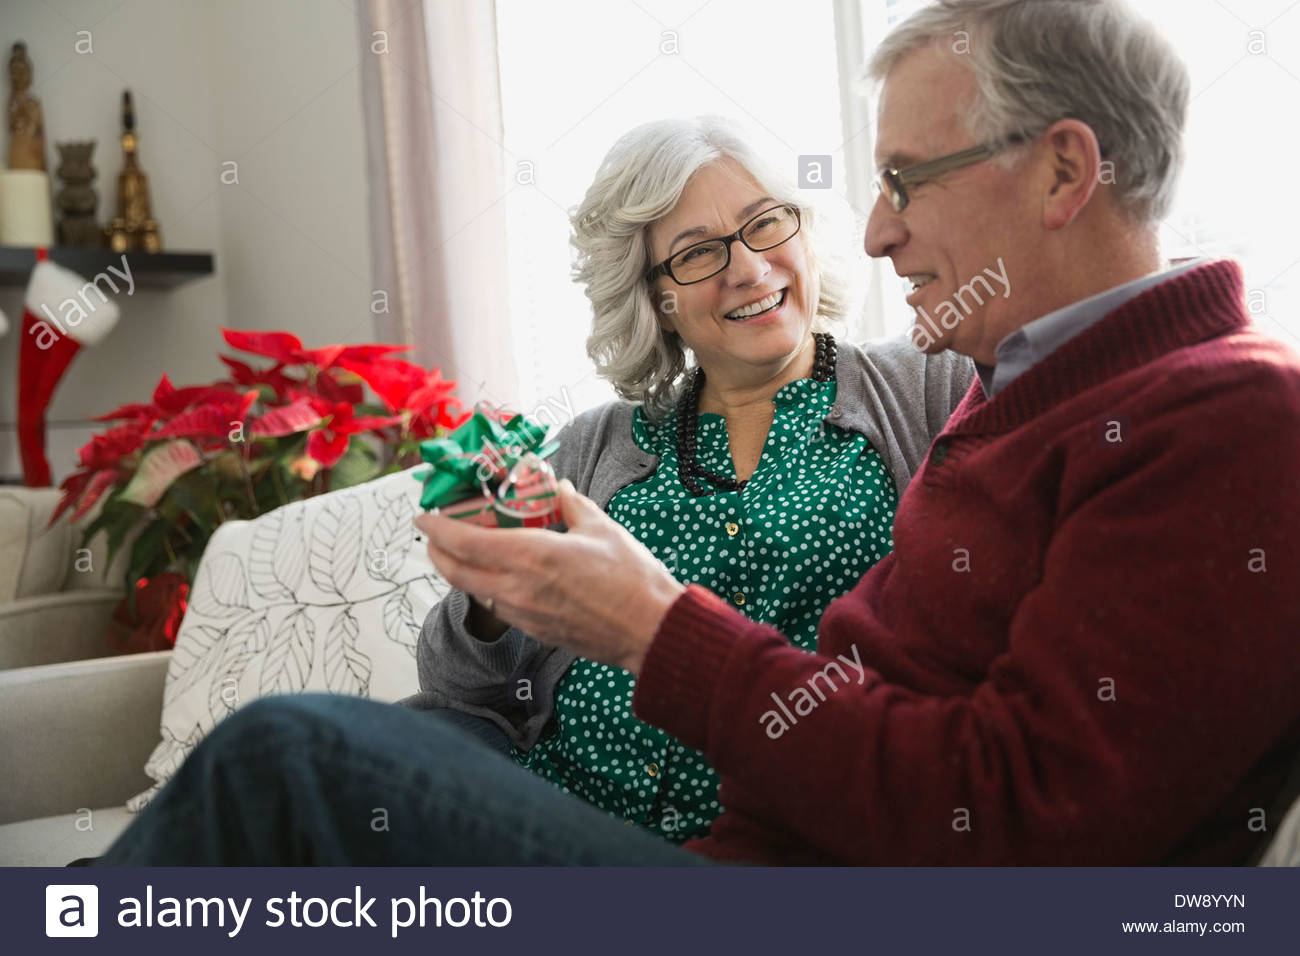 Senior couple sitting in living room exchanging Christmas gifts - Stock Image